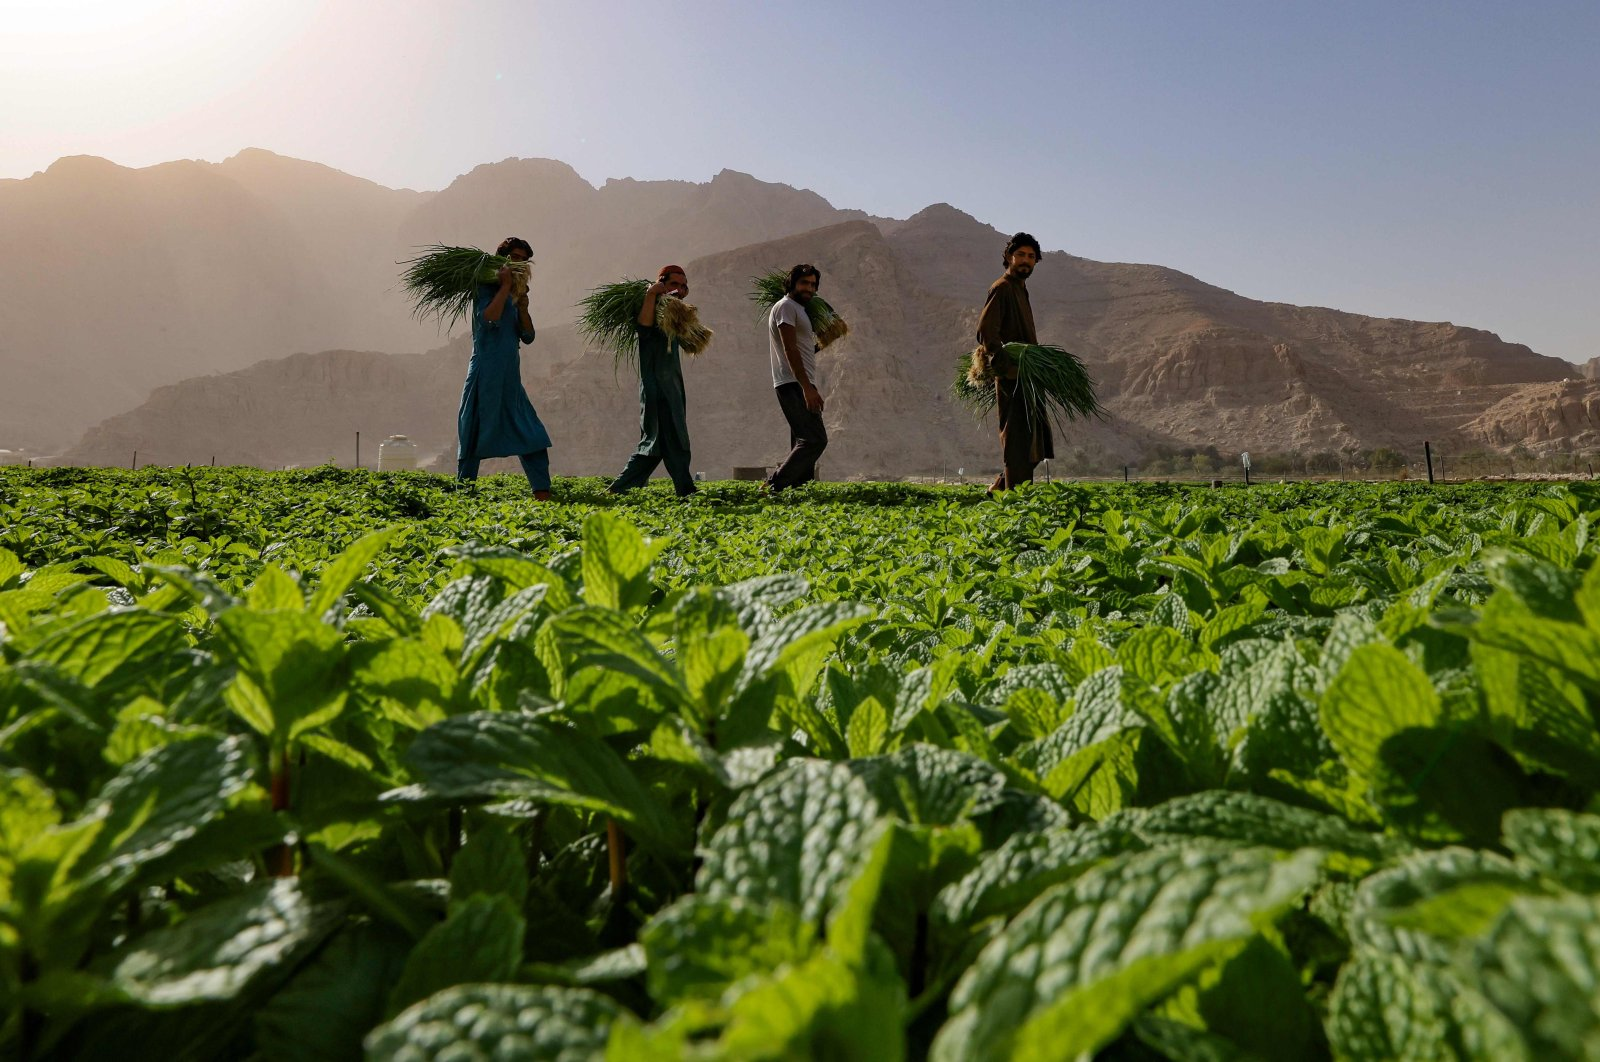 Farmers harvest leafy vegetables in a field in the mountain range of Jabel Jais, in the Gulf Emirate of Ras Al Khaimah, United Arab Emirates, Jan. 24, 2021. (AFP Photo)